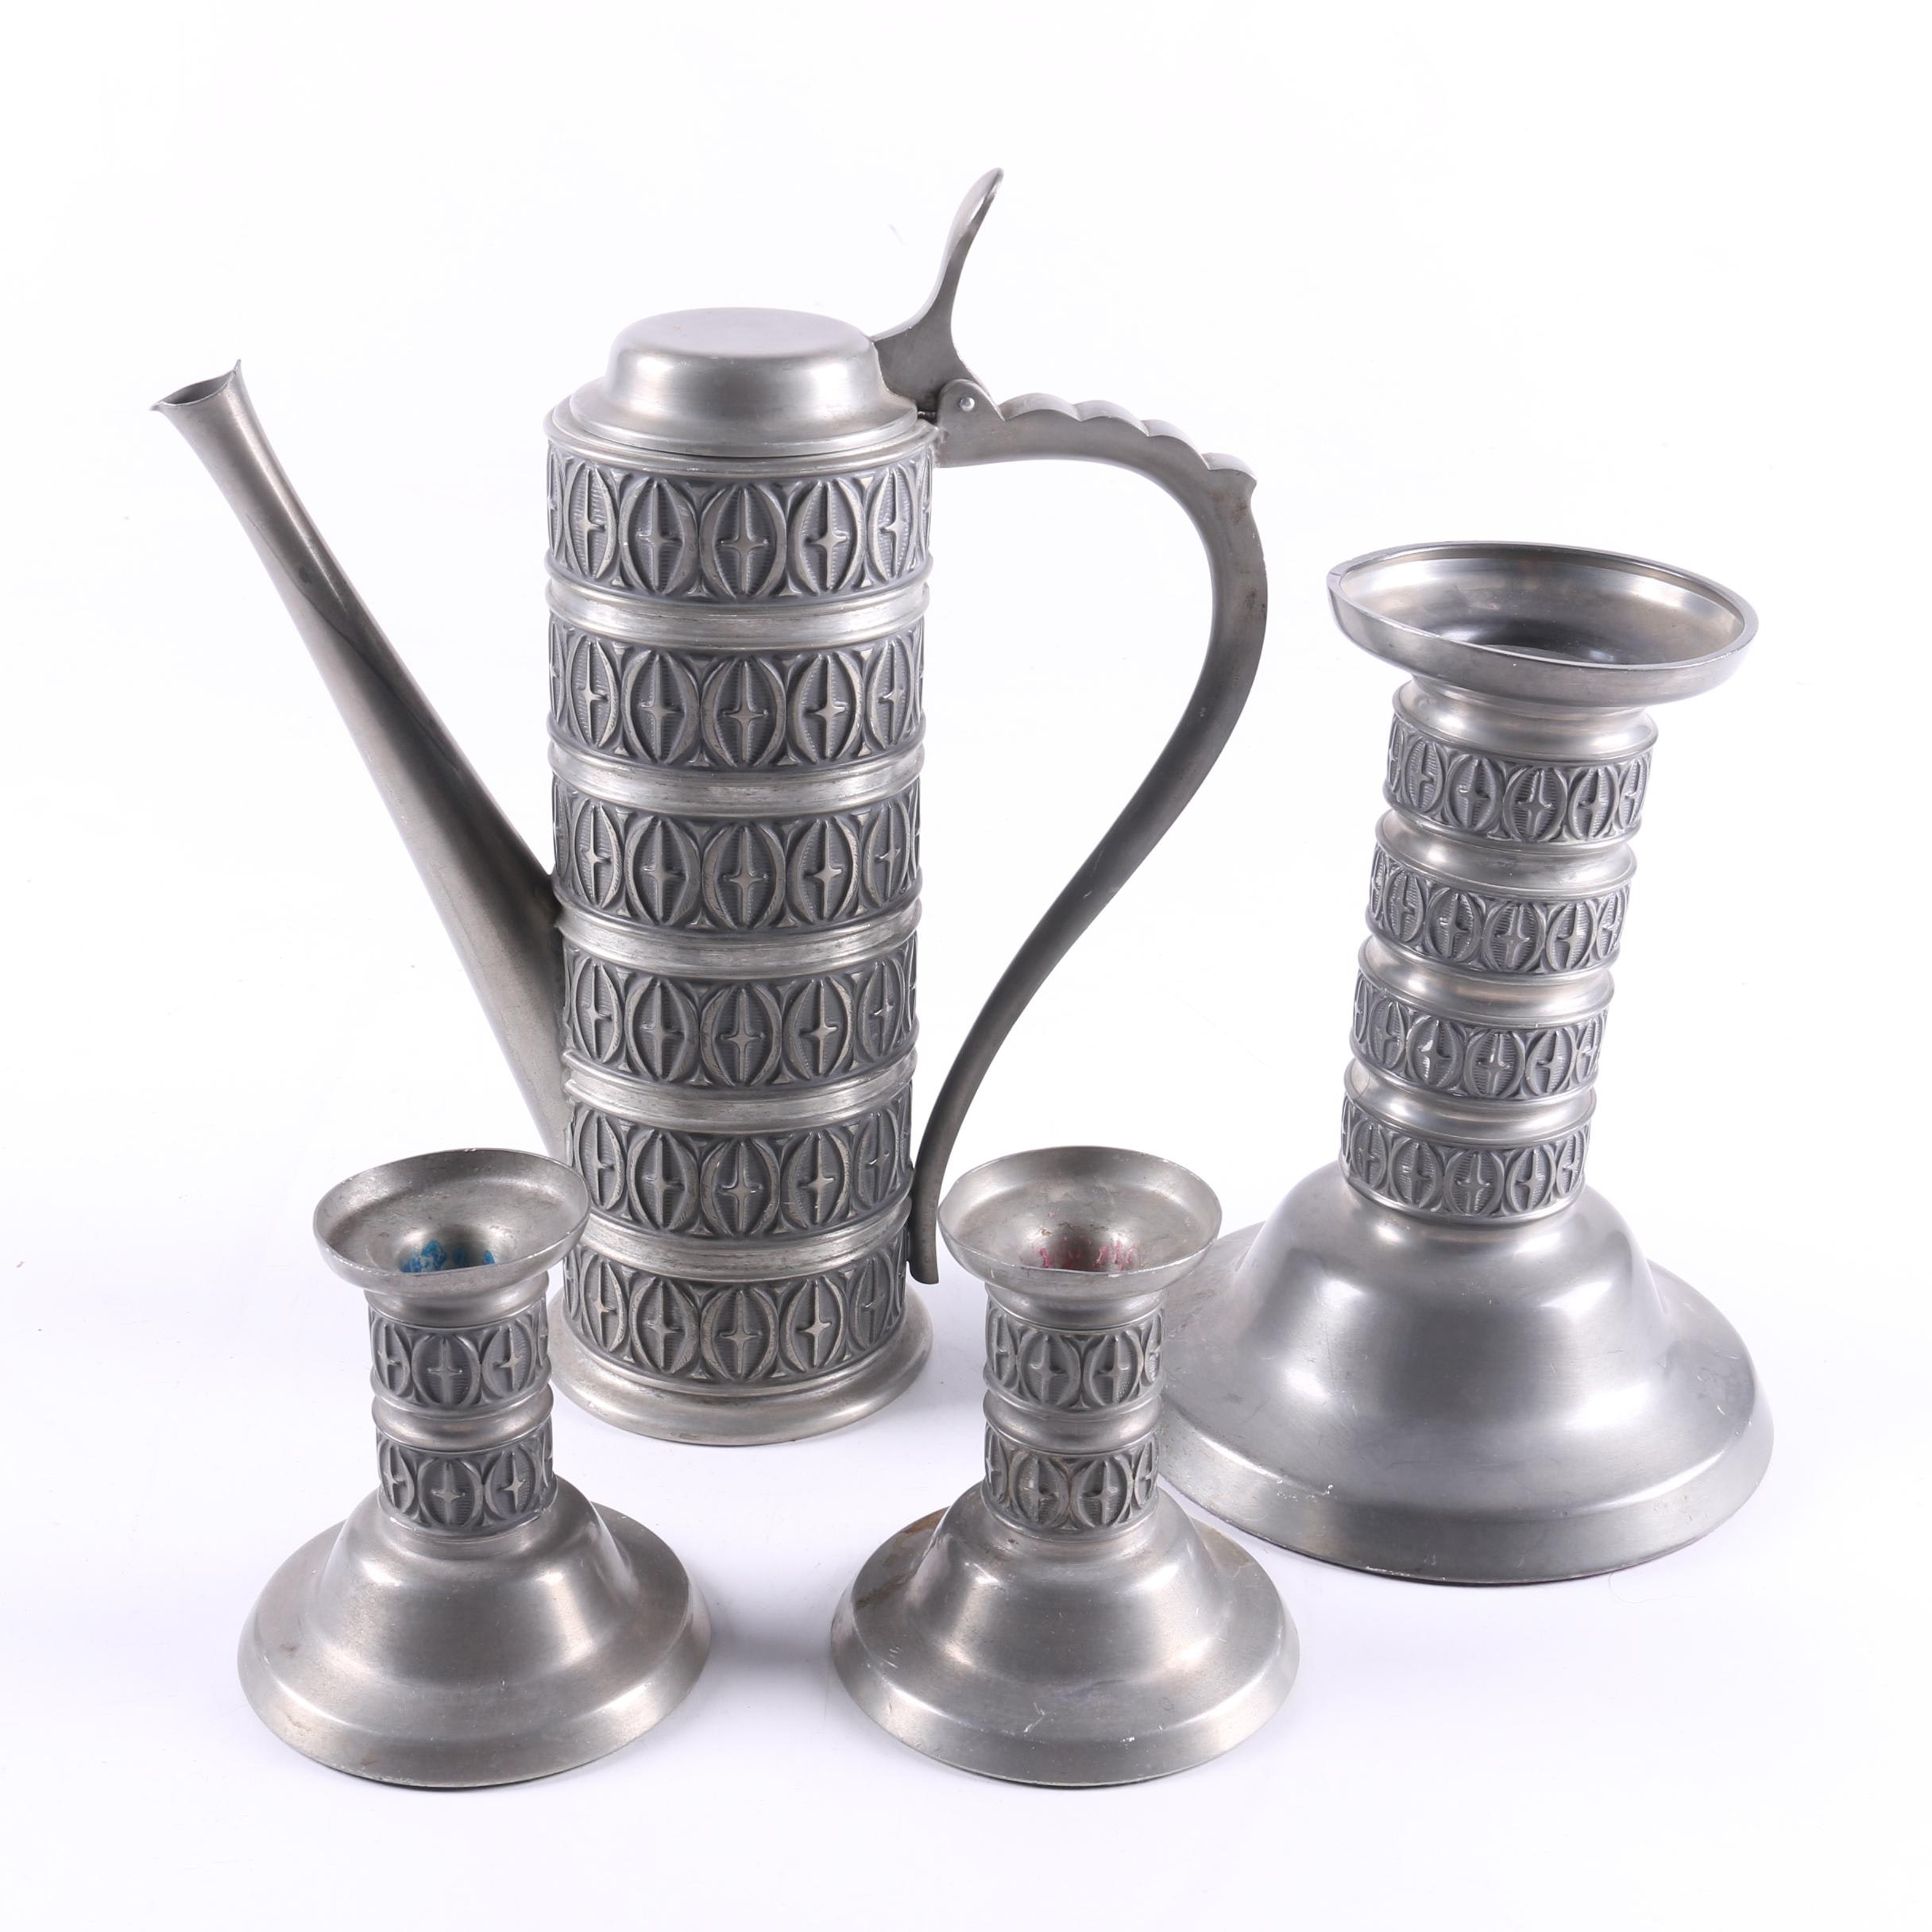 Mid-Century Pewter Candle Holders and Pitcher by Haugrud Norway